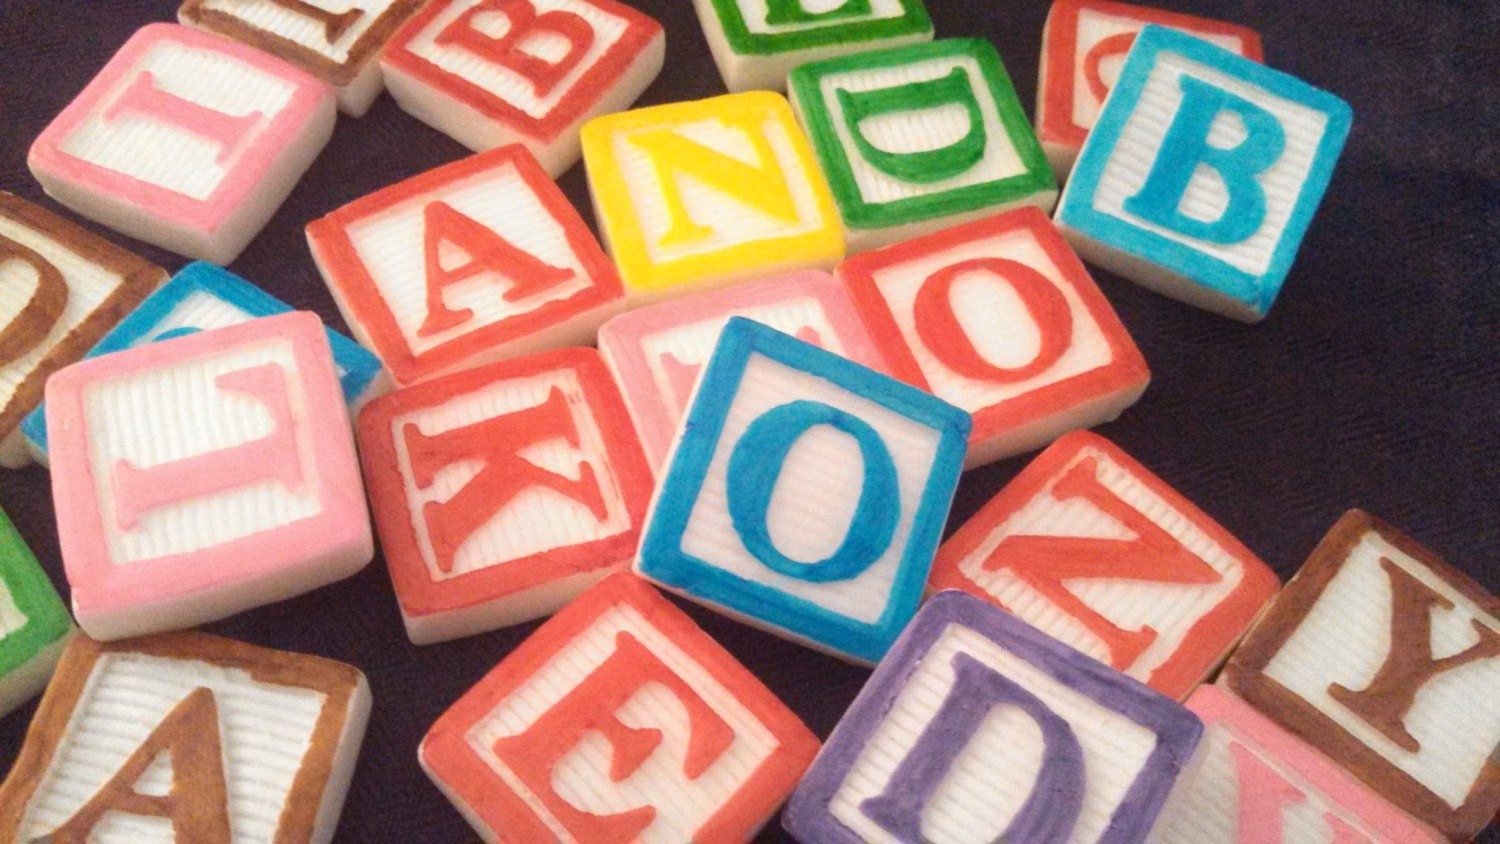 Cake Decorating Letter Blocks : Set of 6 Edible Fondant Candy Block Letters-Cake/Cupcake